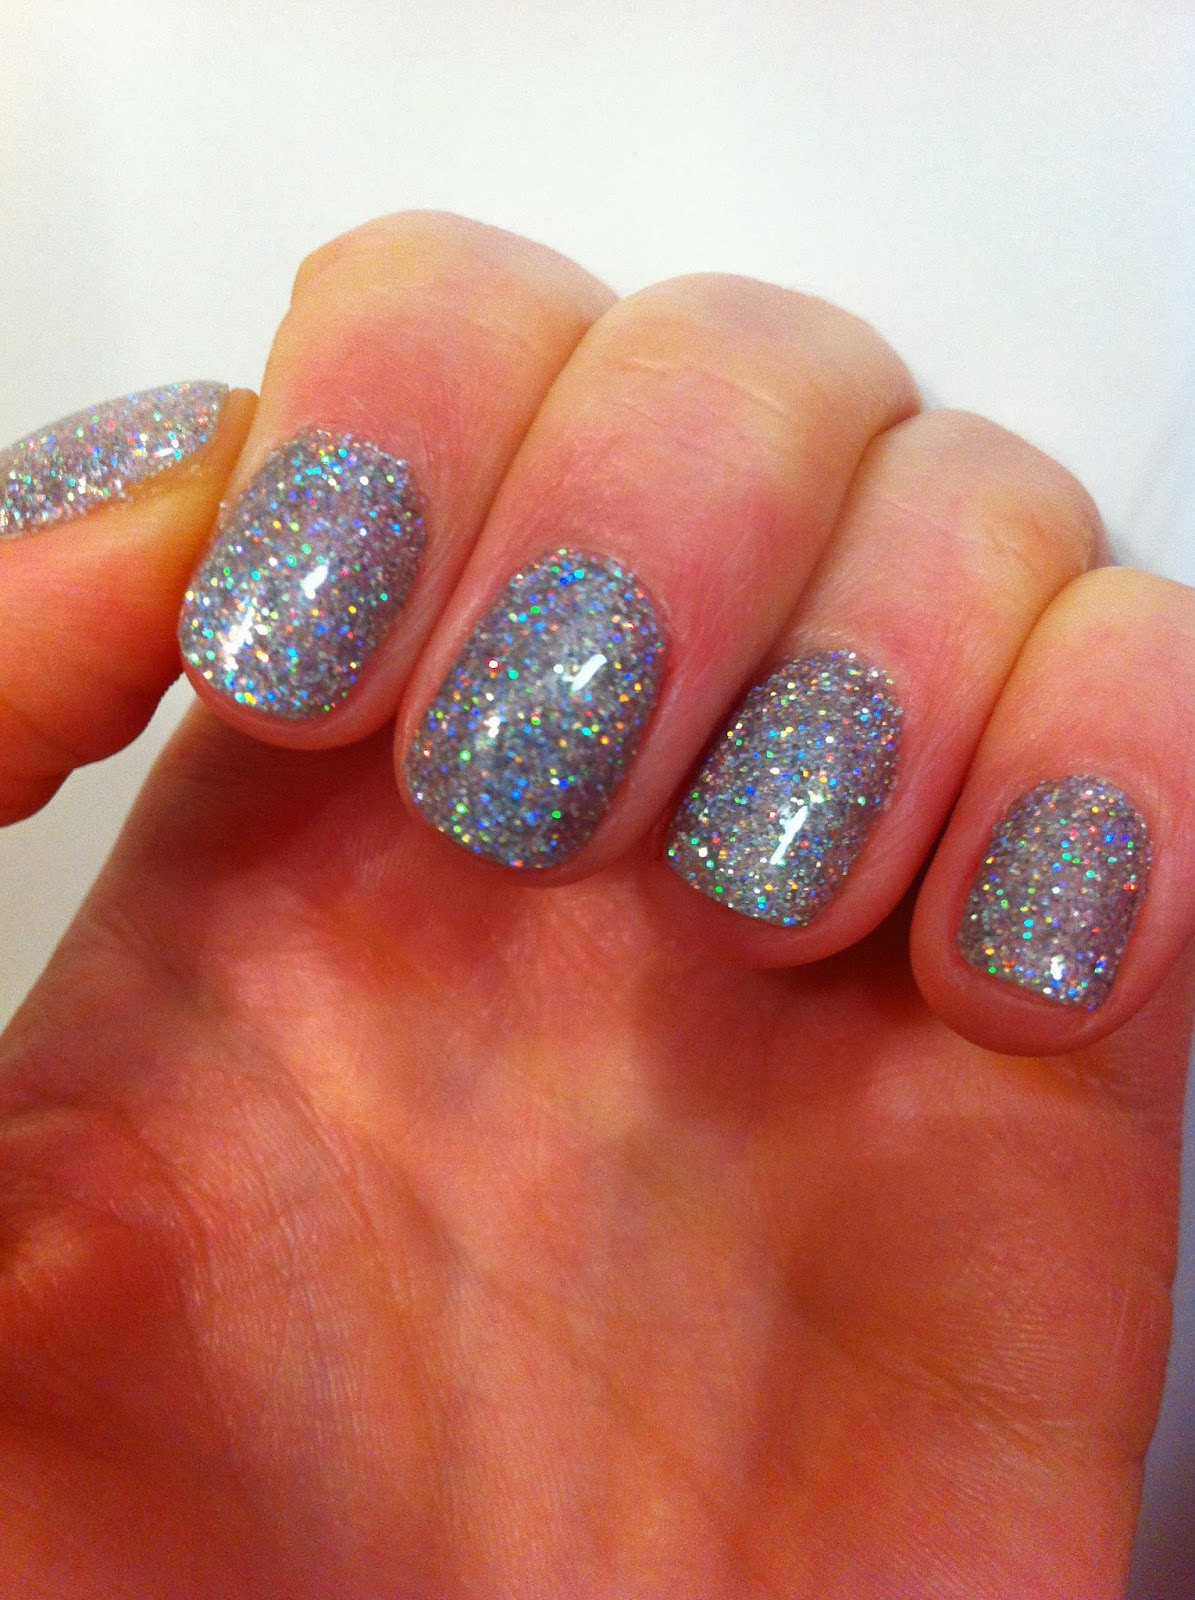 Beauty Box Glitter Gel Manicure